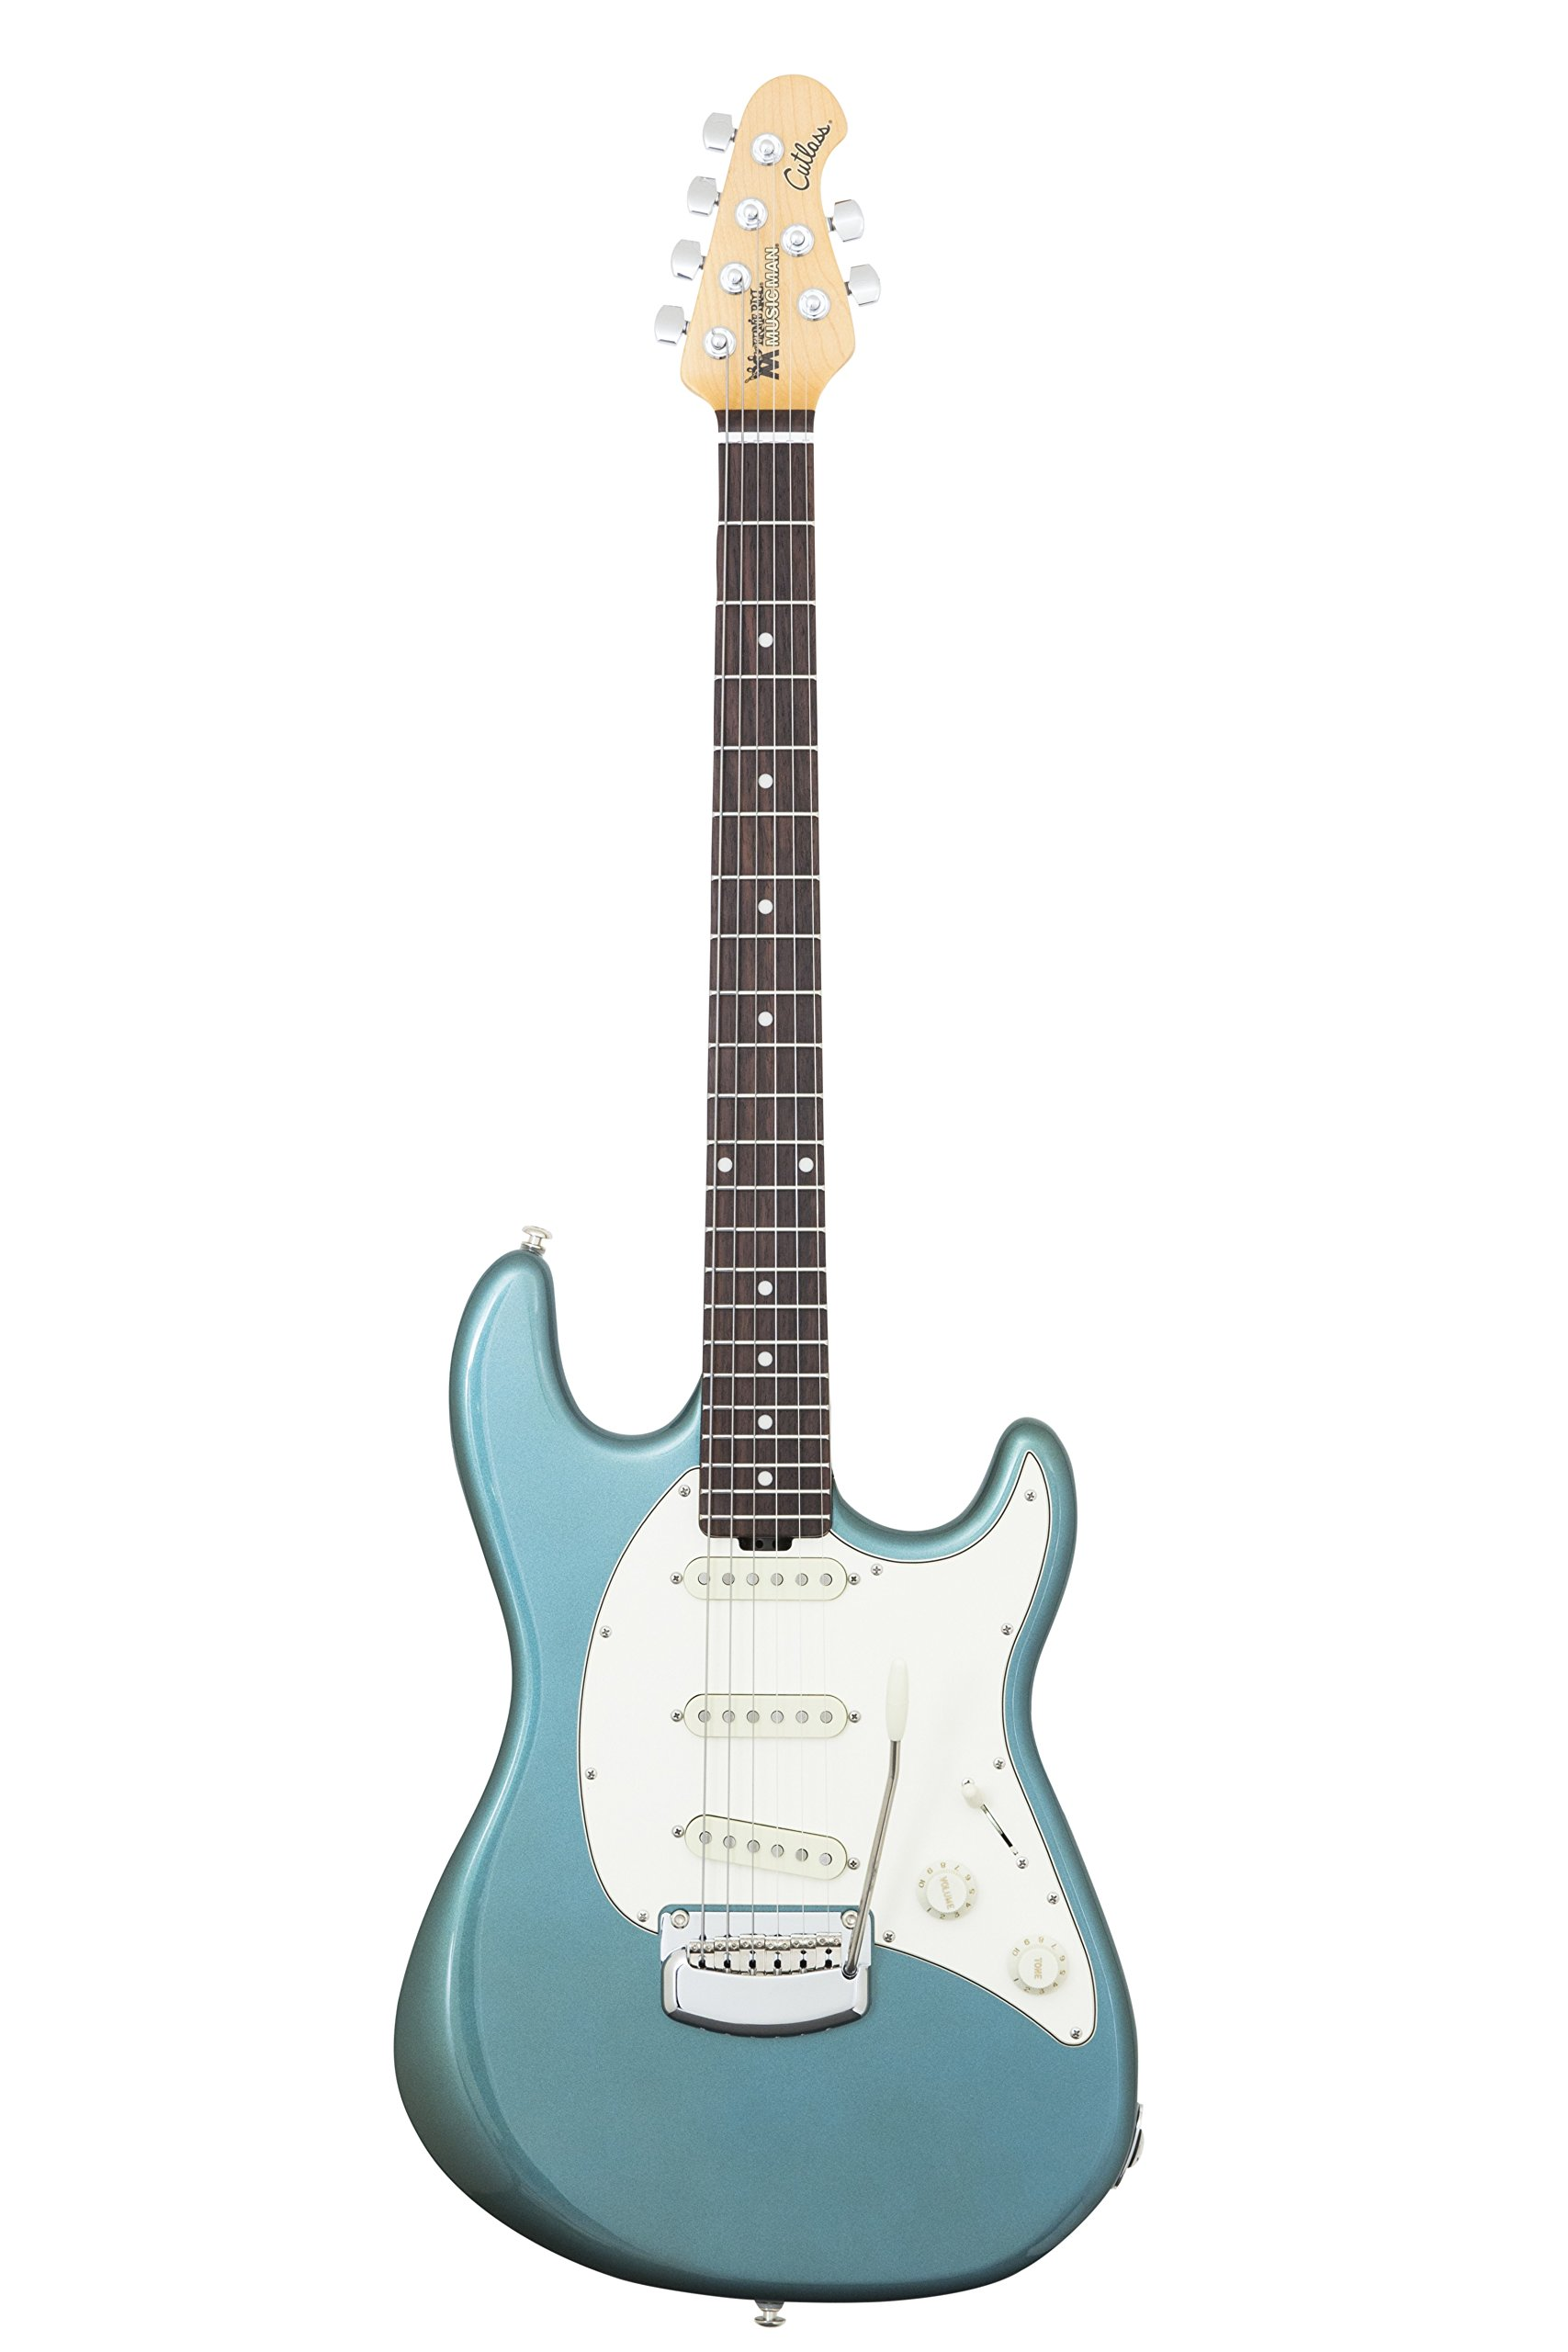 Ernie Ball Music Man 805-S1-20-08 Cutlass Vintage Guitar Turquoise Rosewood Fretboard